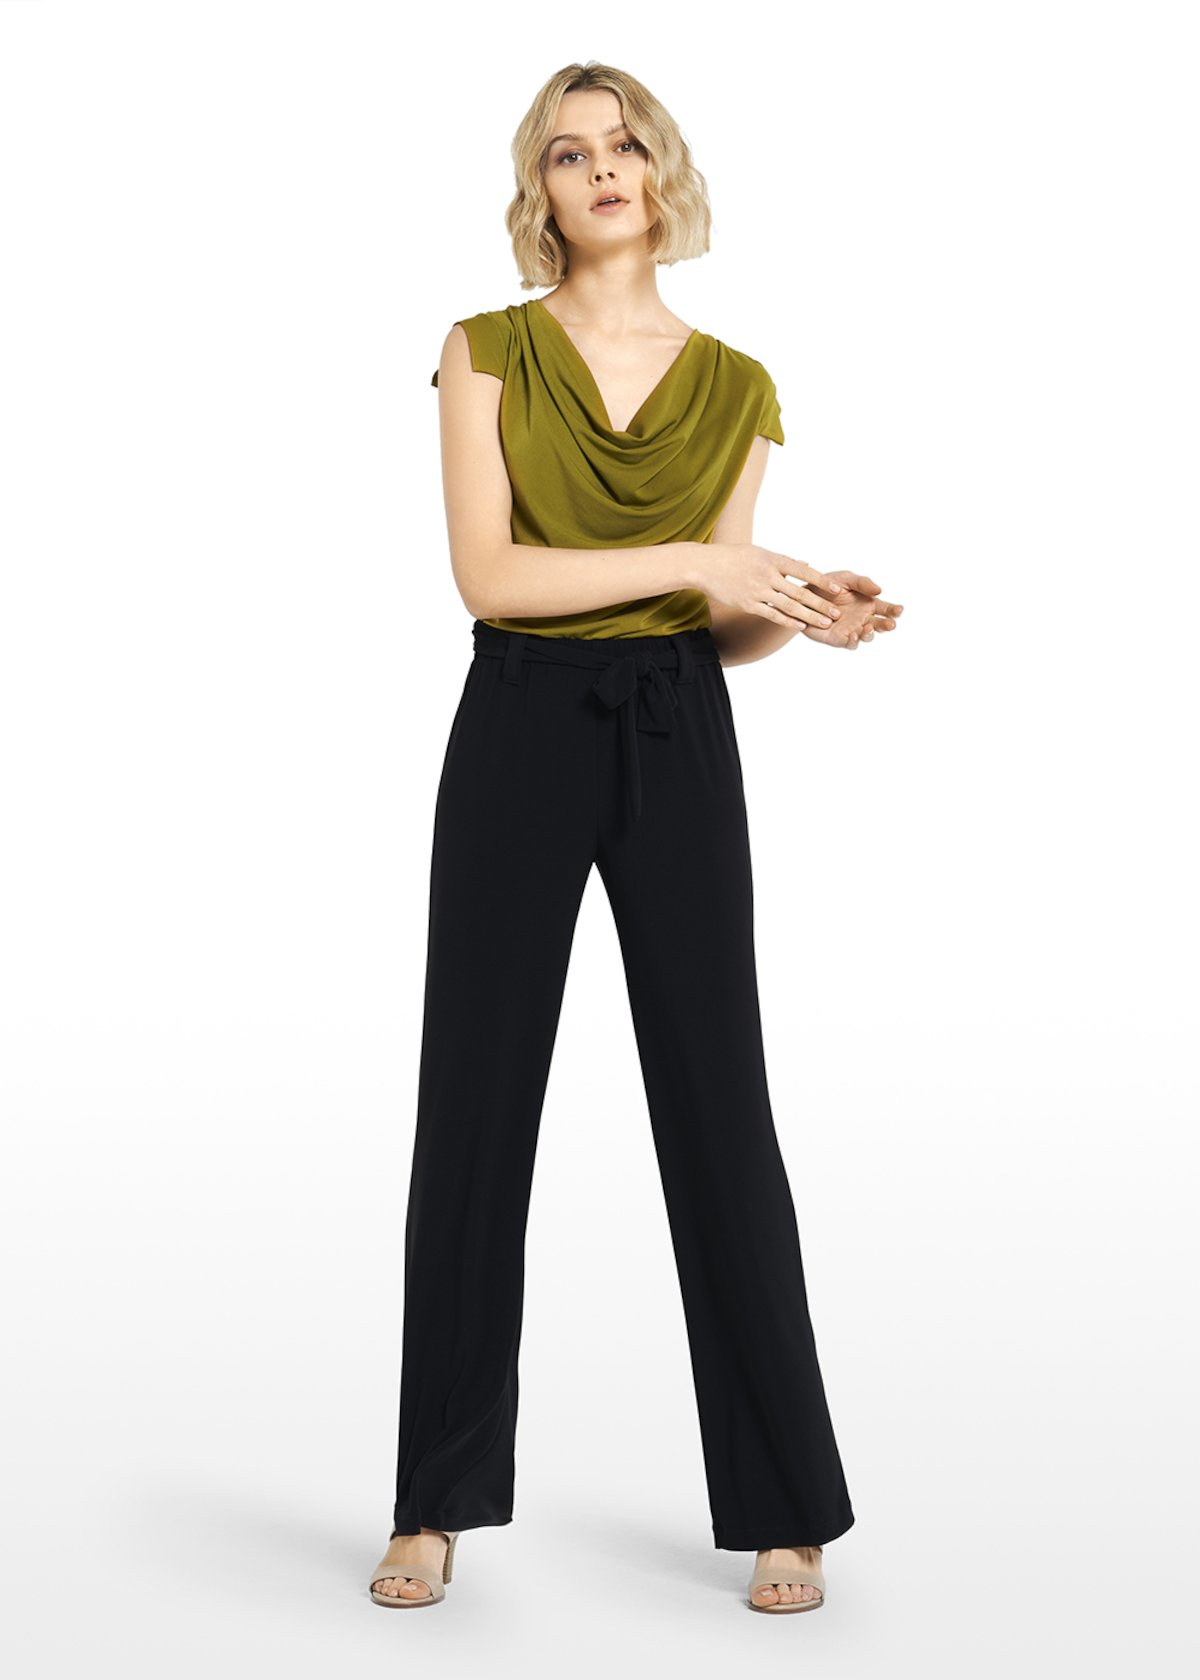 Pincher jersey trousers with sash - Black - Woman - Category image